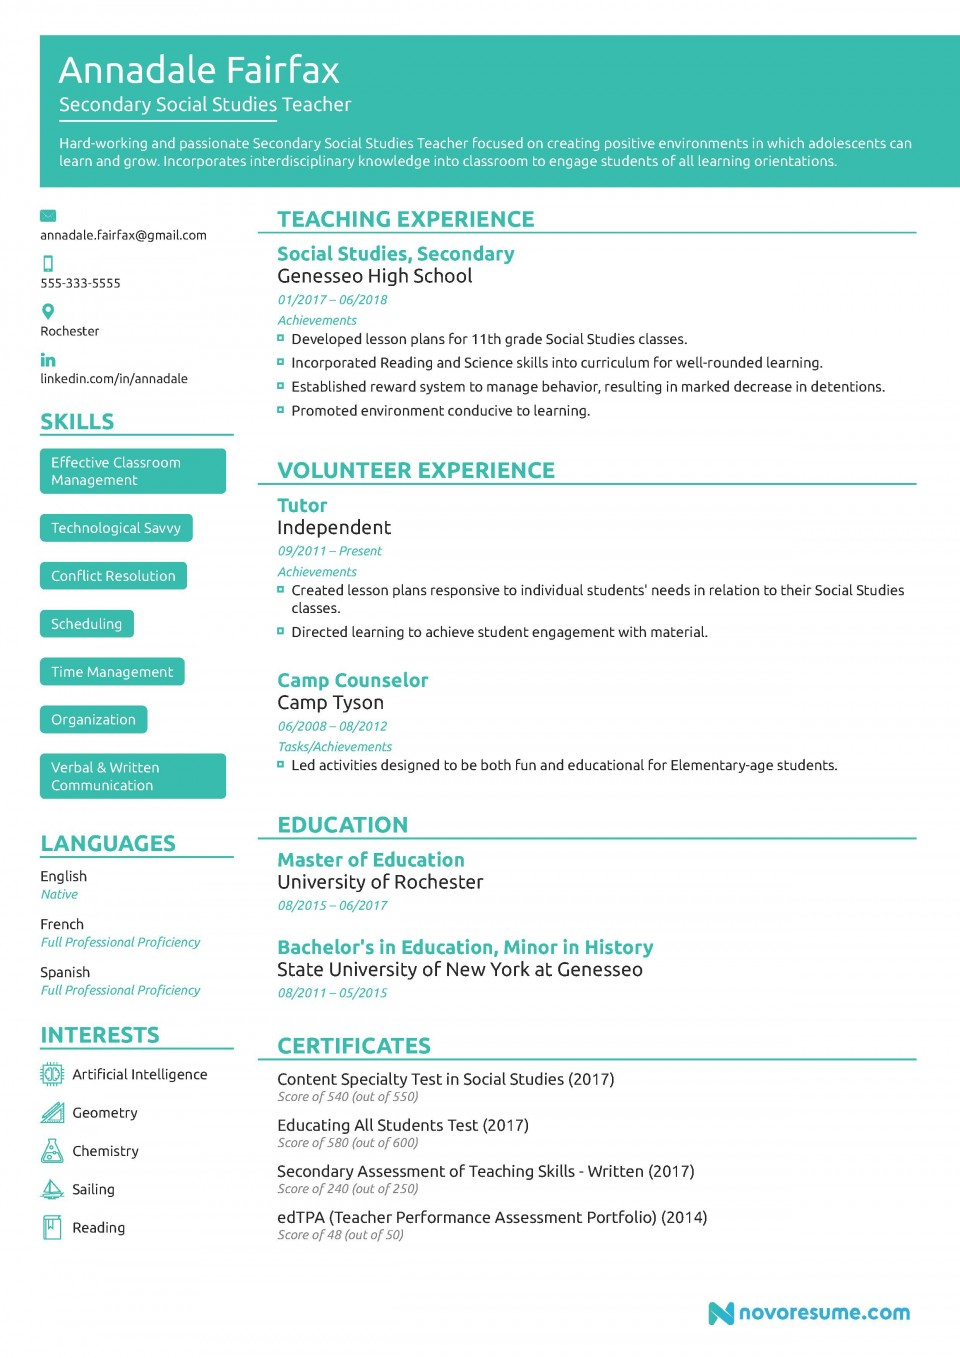 009 Wondrou Resume Template For Teacher Photo  Free Download Australia Microsoft Word 2007960